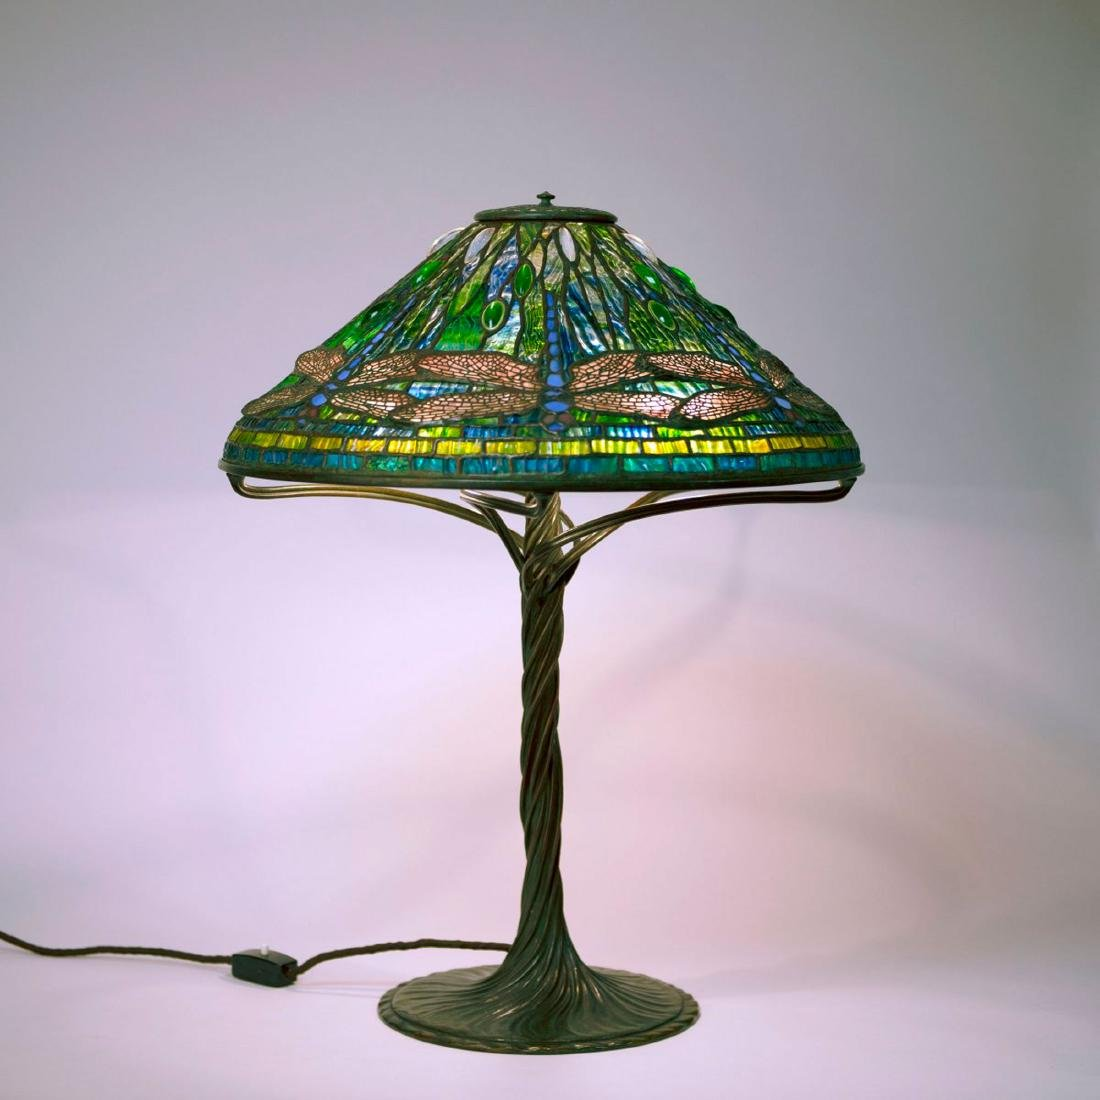 'Dragonfly' table light, 1899